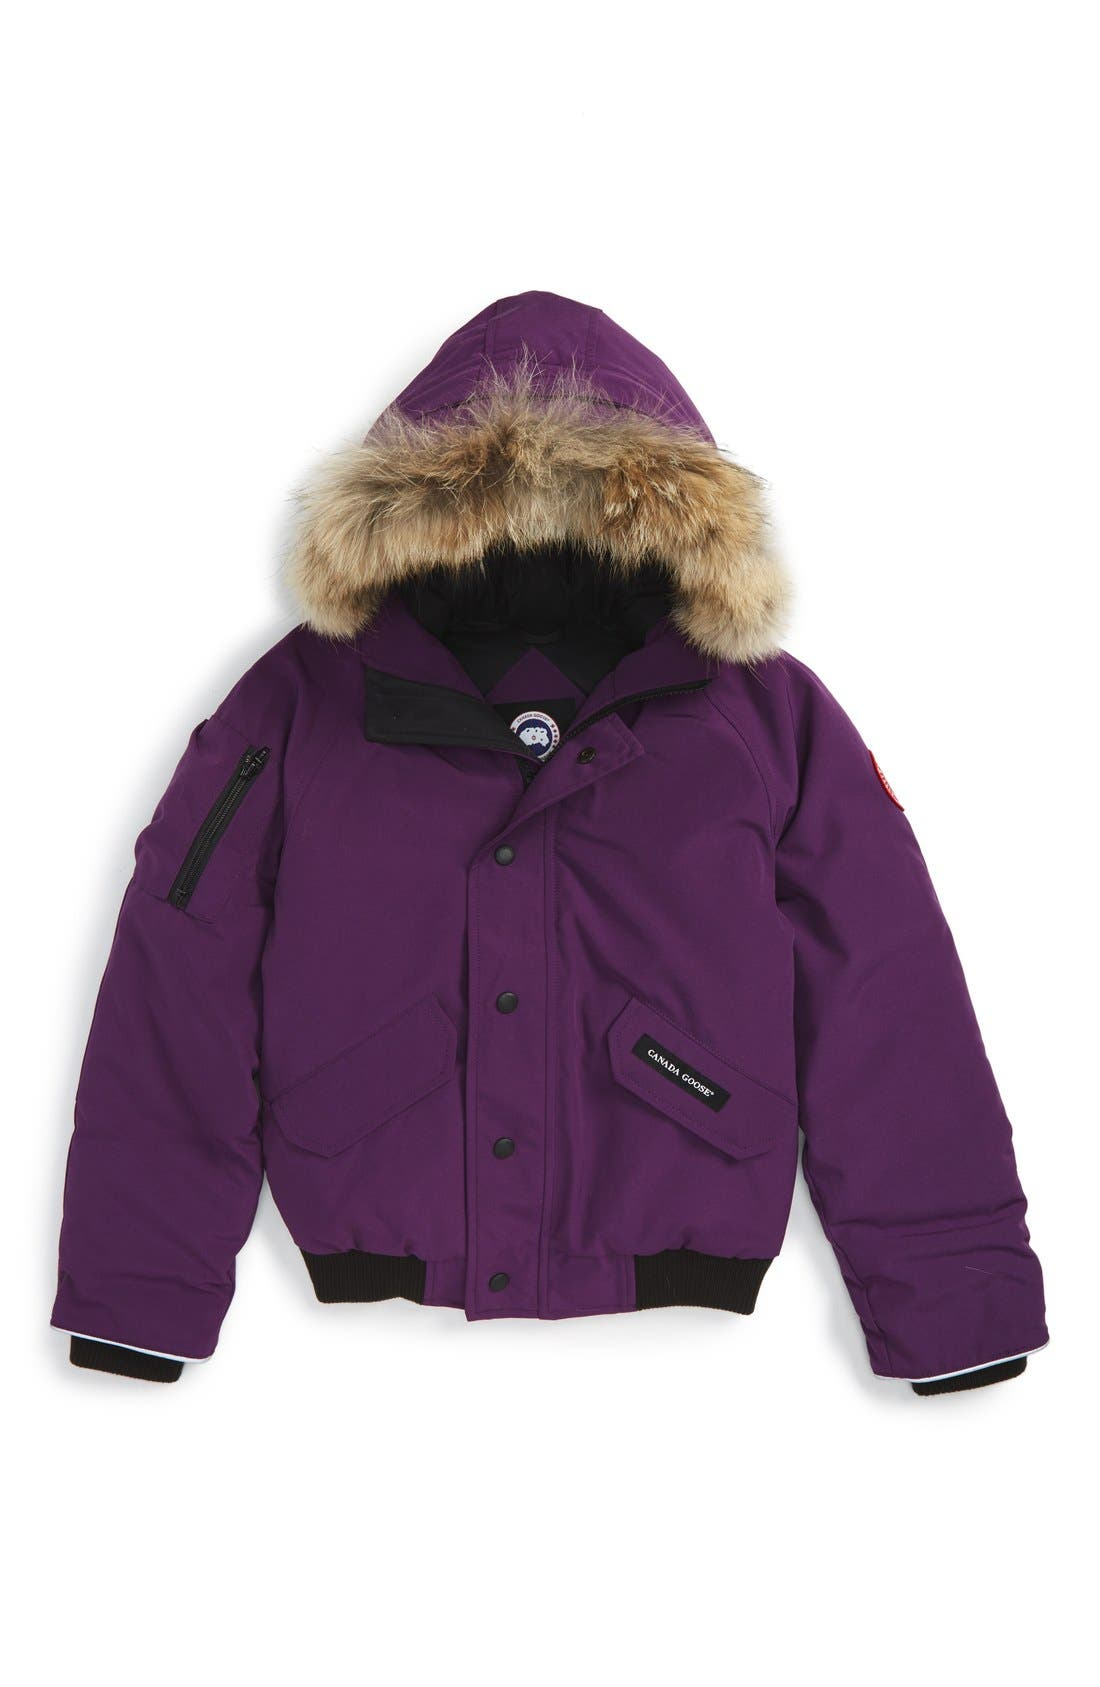 Alternate Image 1 Selected - Canada Goose 'Rundle' Down Bomber Jacket with Genuine Coyote Fur Trim (Little Kid & Big Kid)